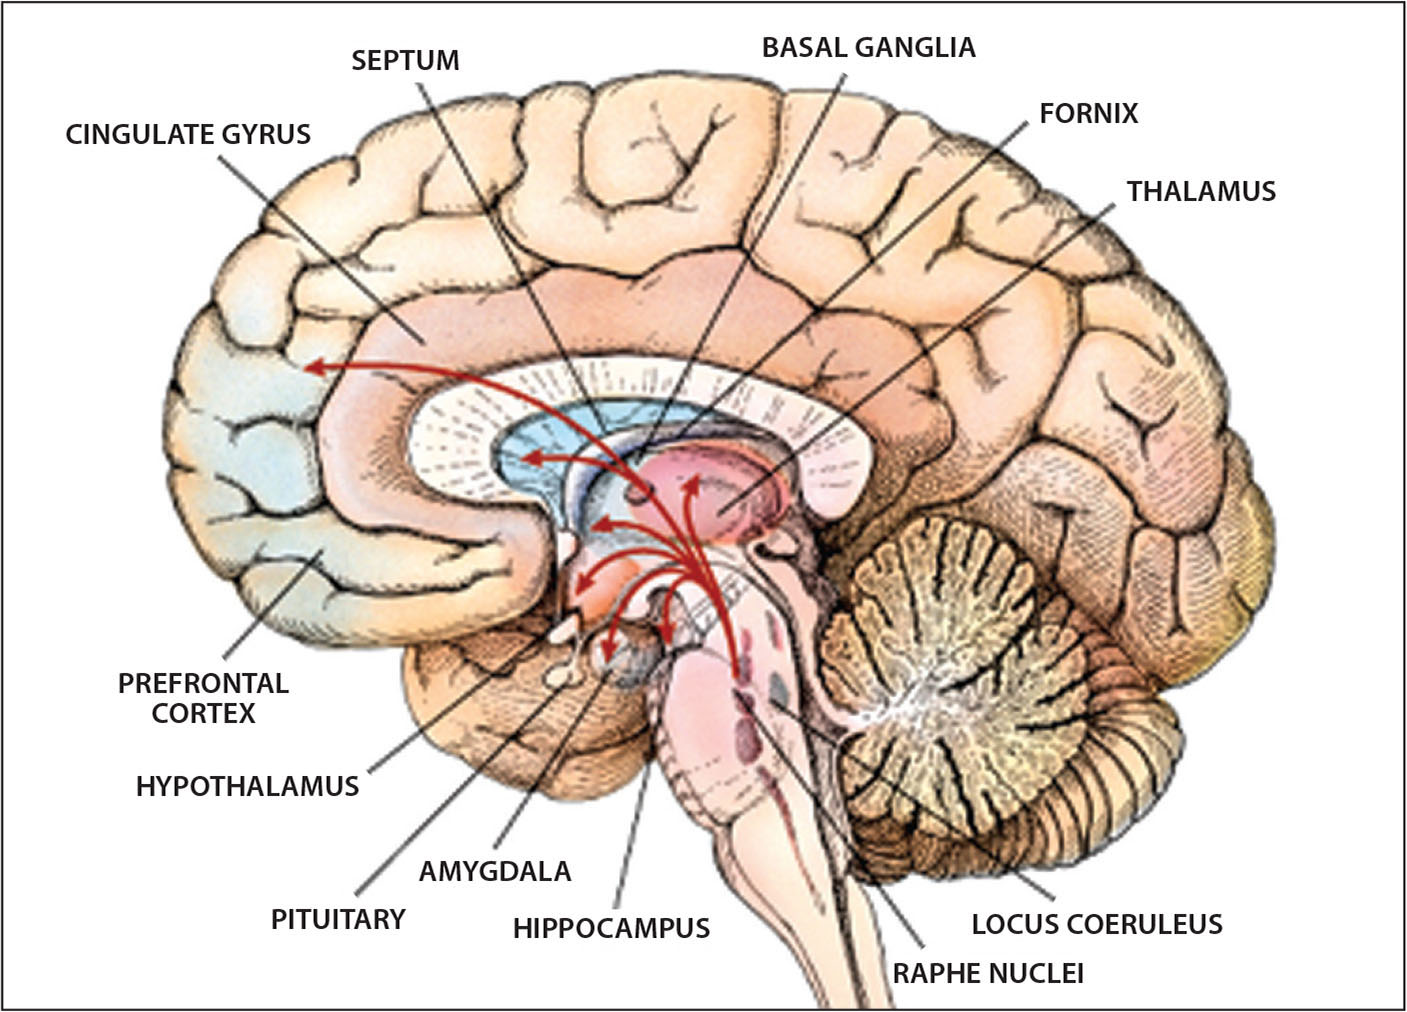 Schematic of the brain. Photo courtesy of and reprinted with permission from C. Donner (2013).